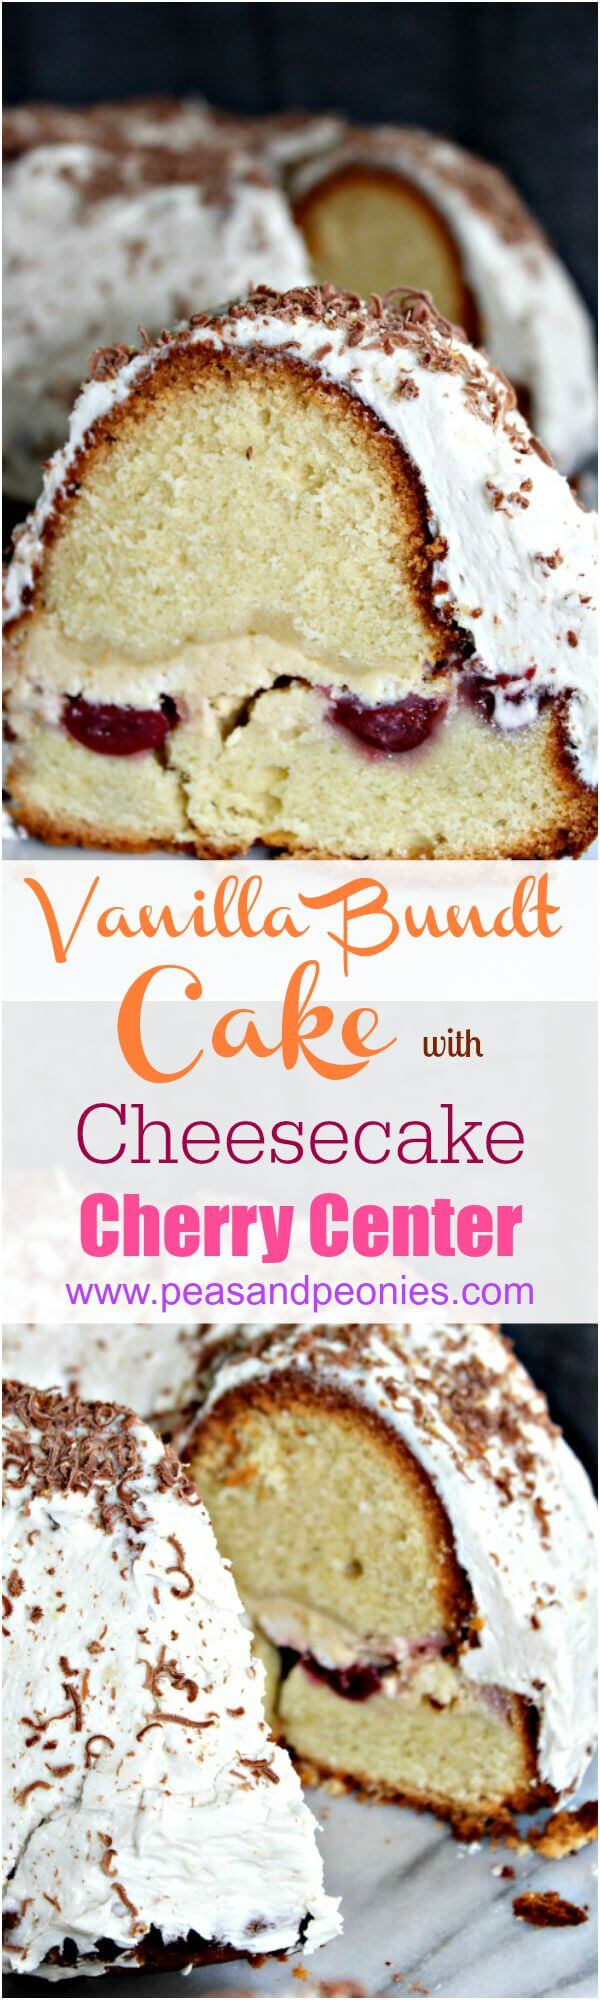 bundt cake with cheesecake center